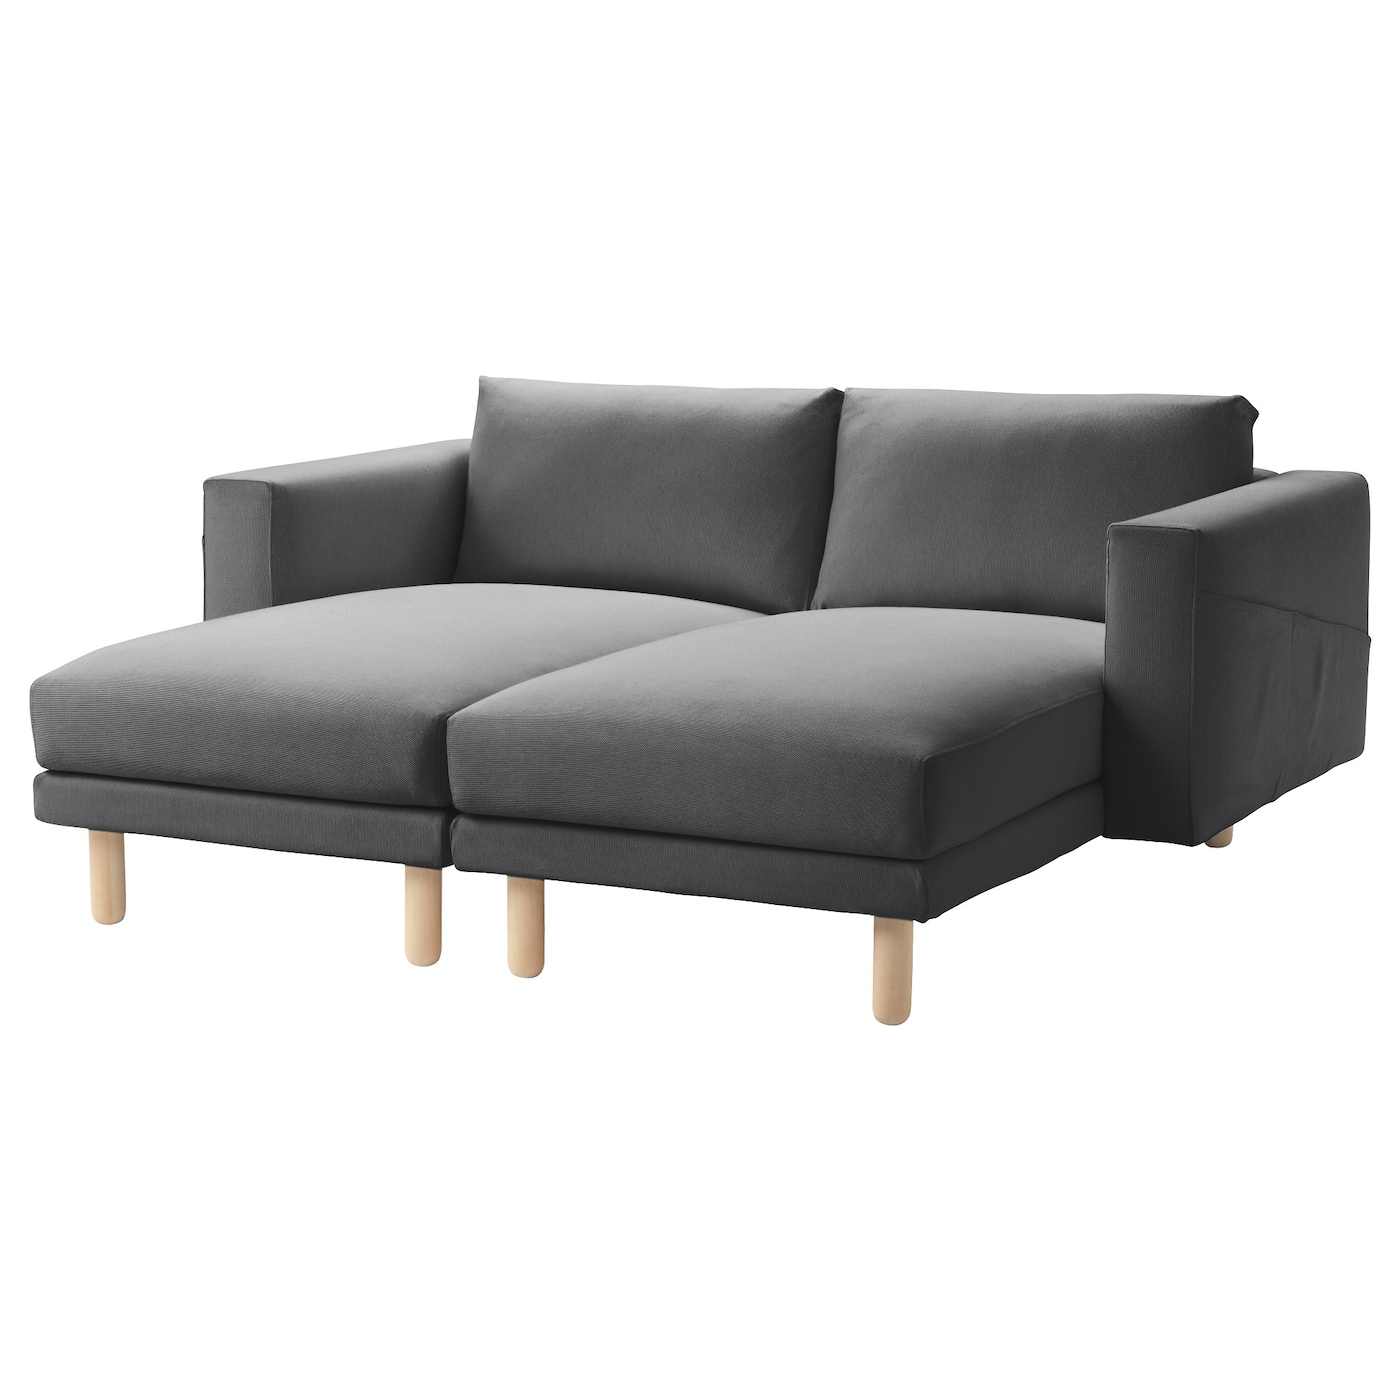 Norsborg 2 chaise longues finnsta dark grey birch ikea - Chaise empilable ikea ...